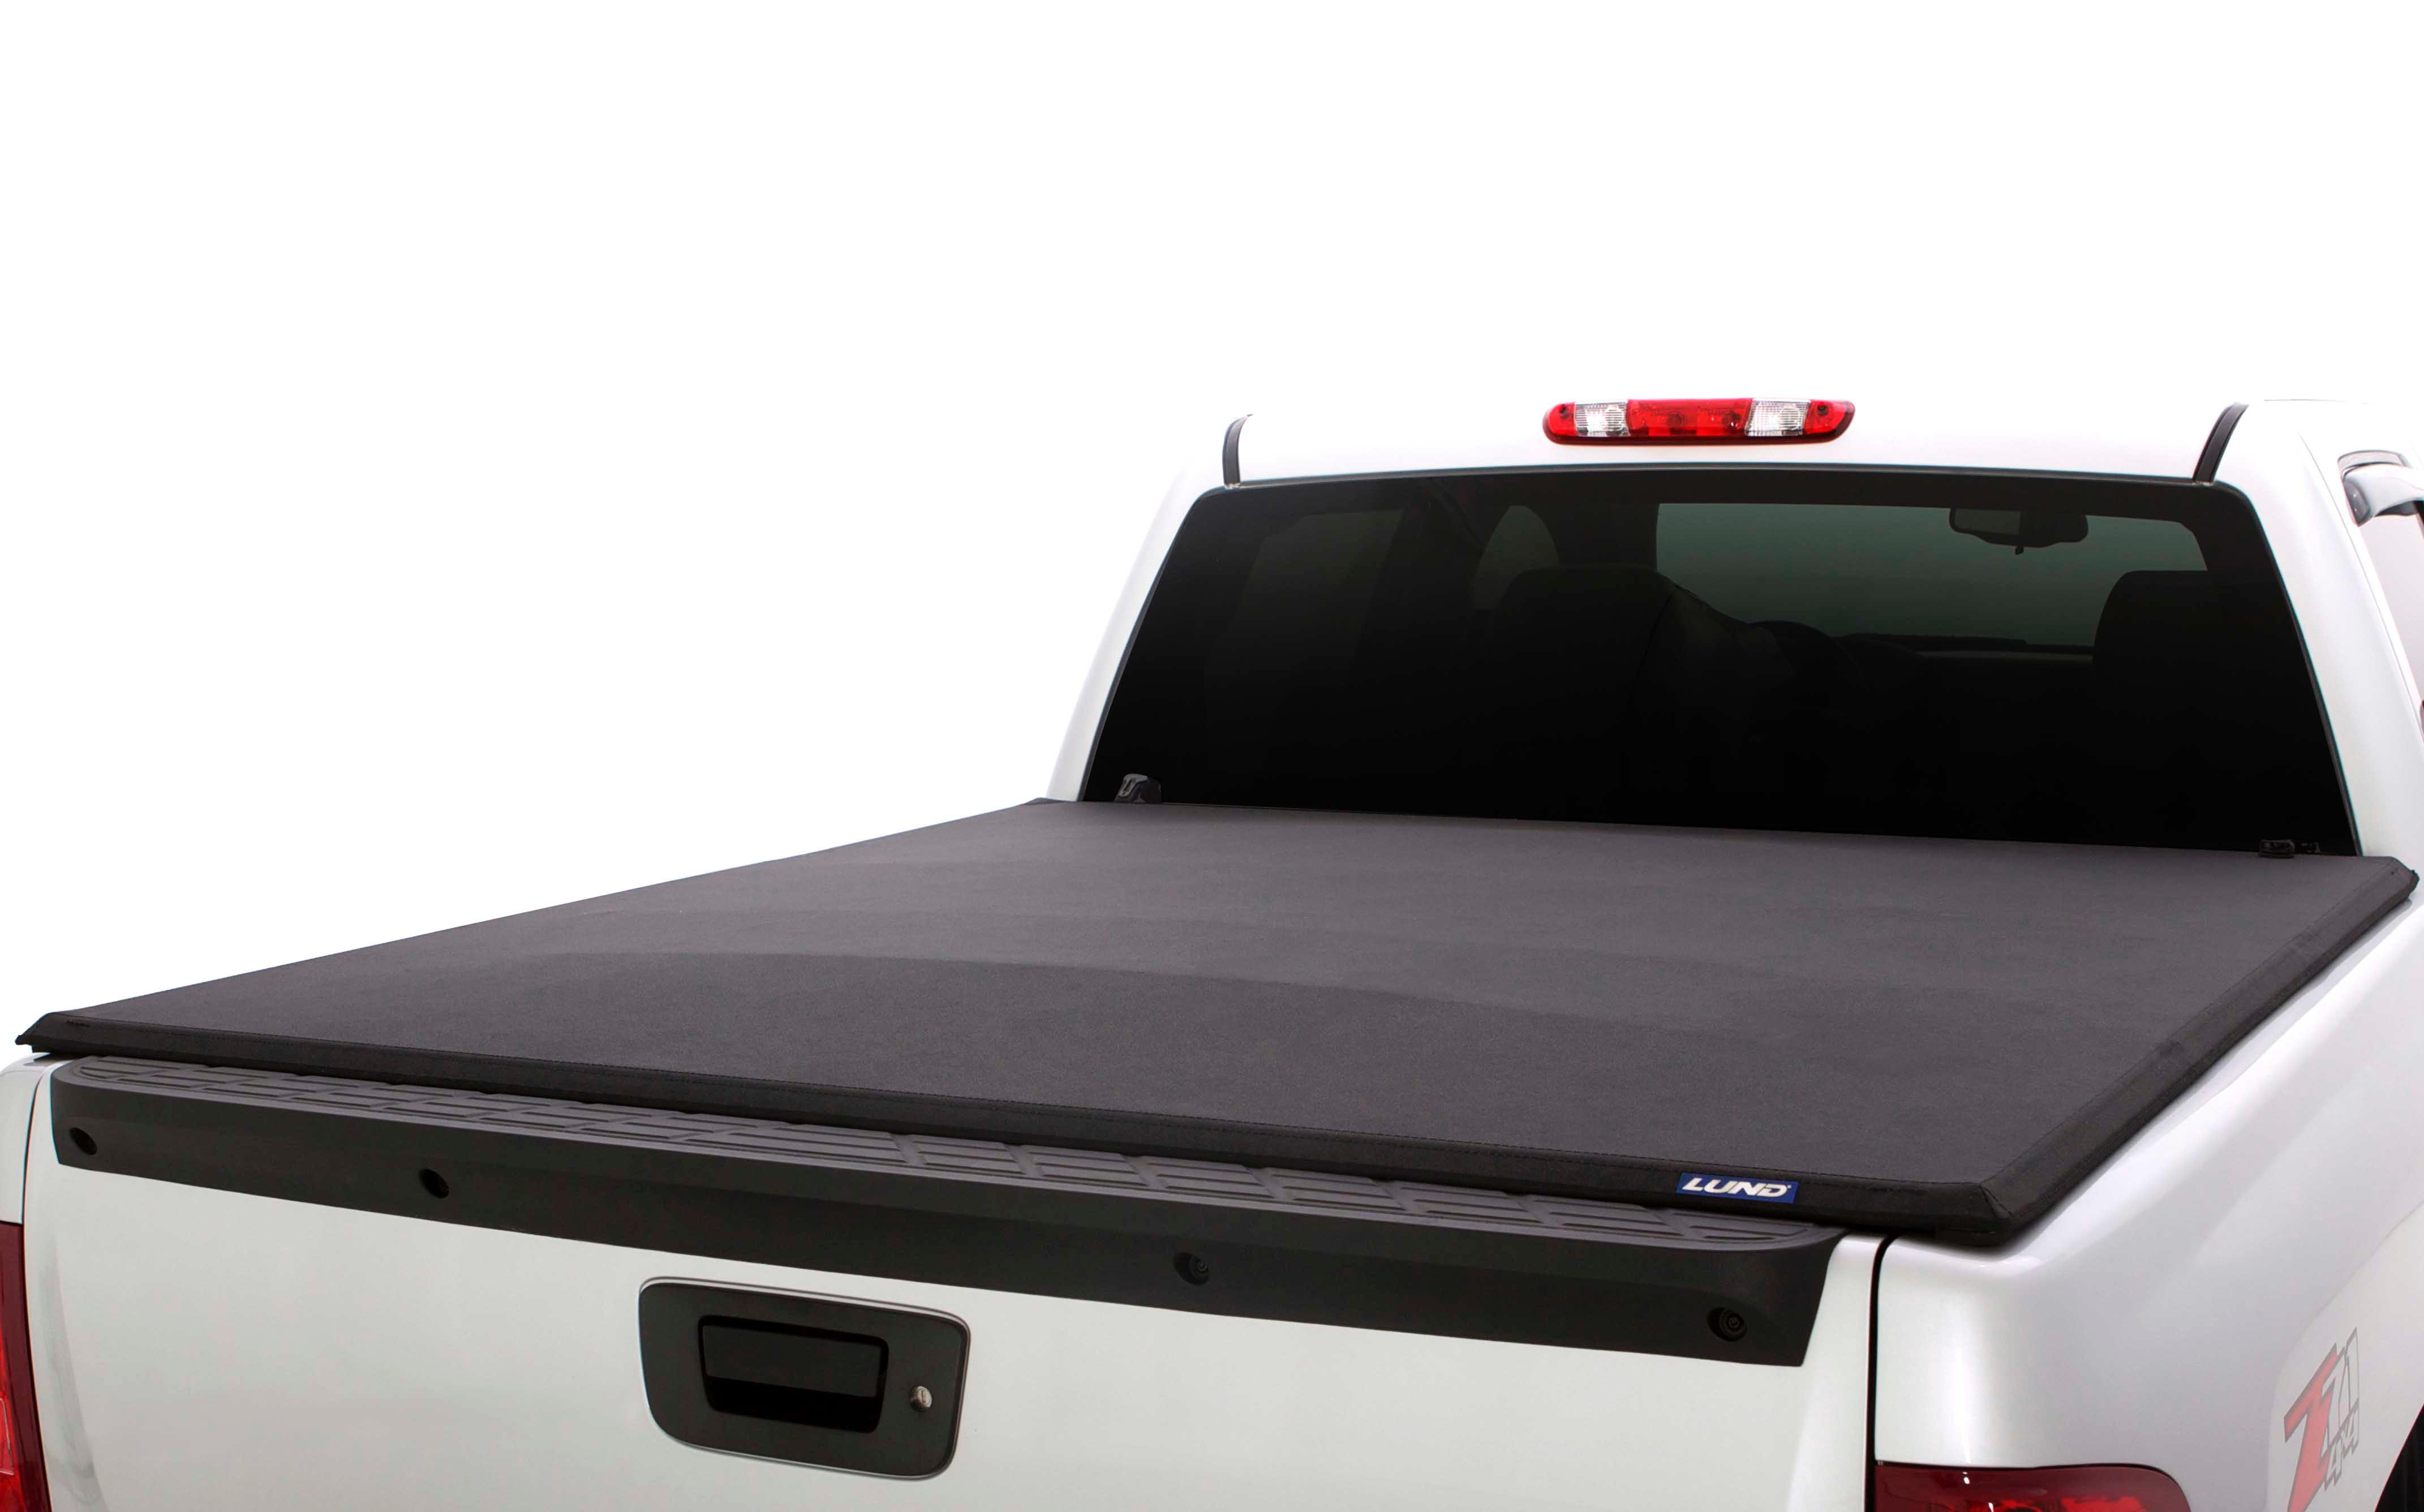 Motors 1999 2004 Ford F150 6 5 Bed Gray R L Bed Side Rail And Tail Gate Cap Kit Oem Car Truck Exterior Mouldings Trim